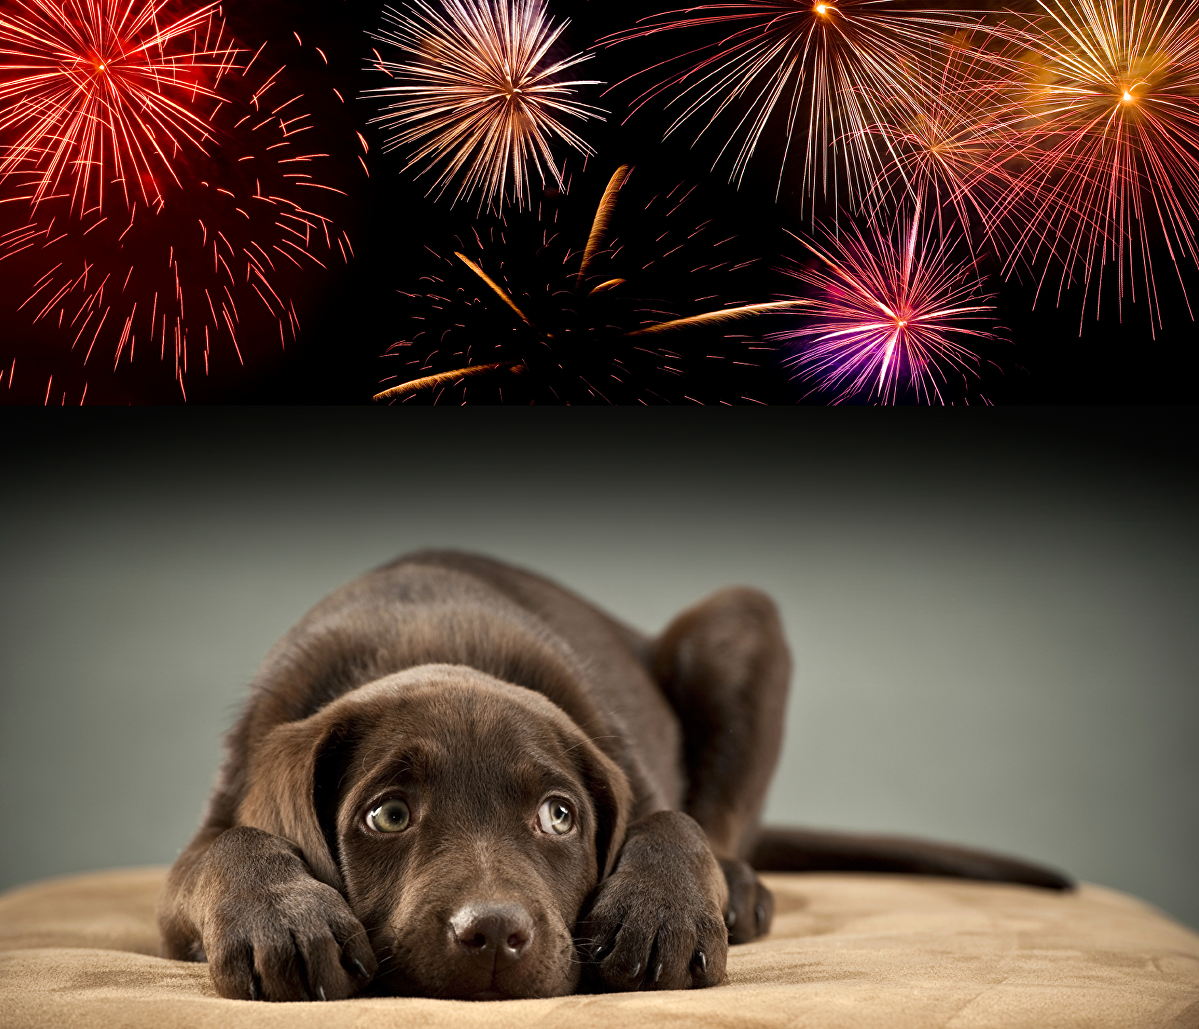 How To Get Dogs Used To Fireworks